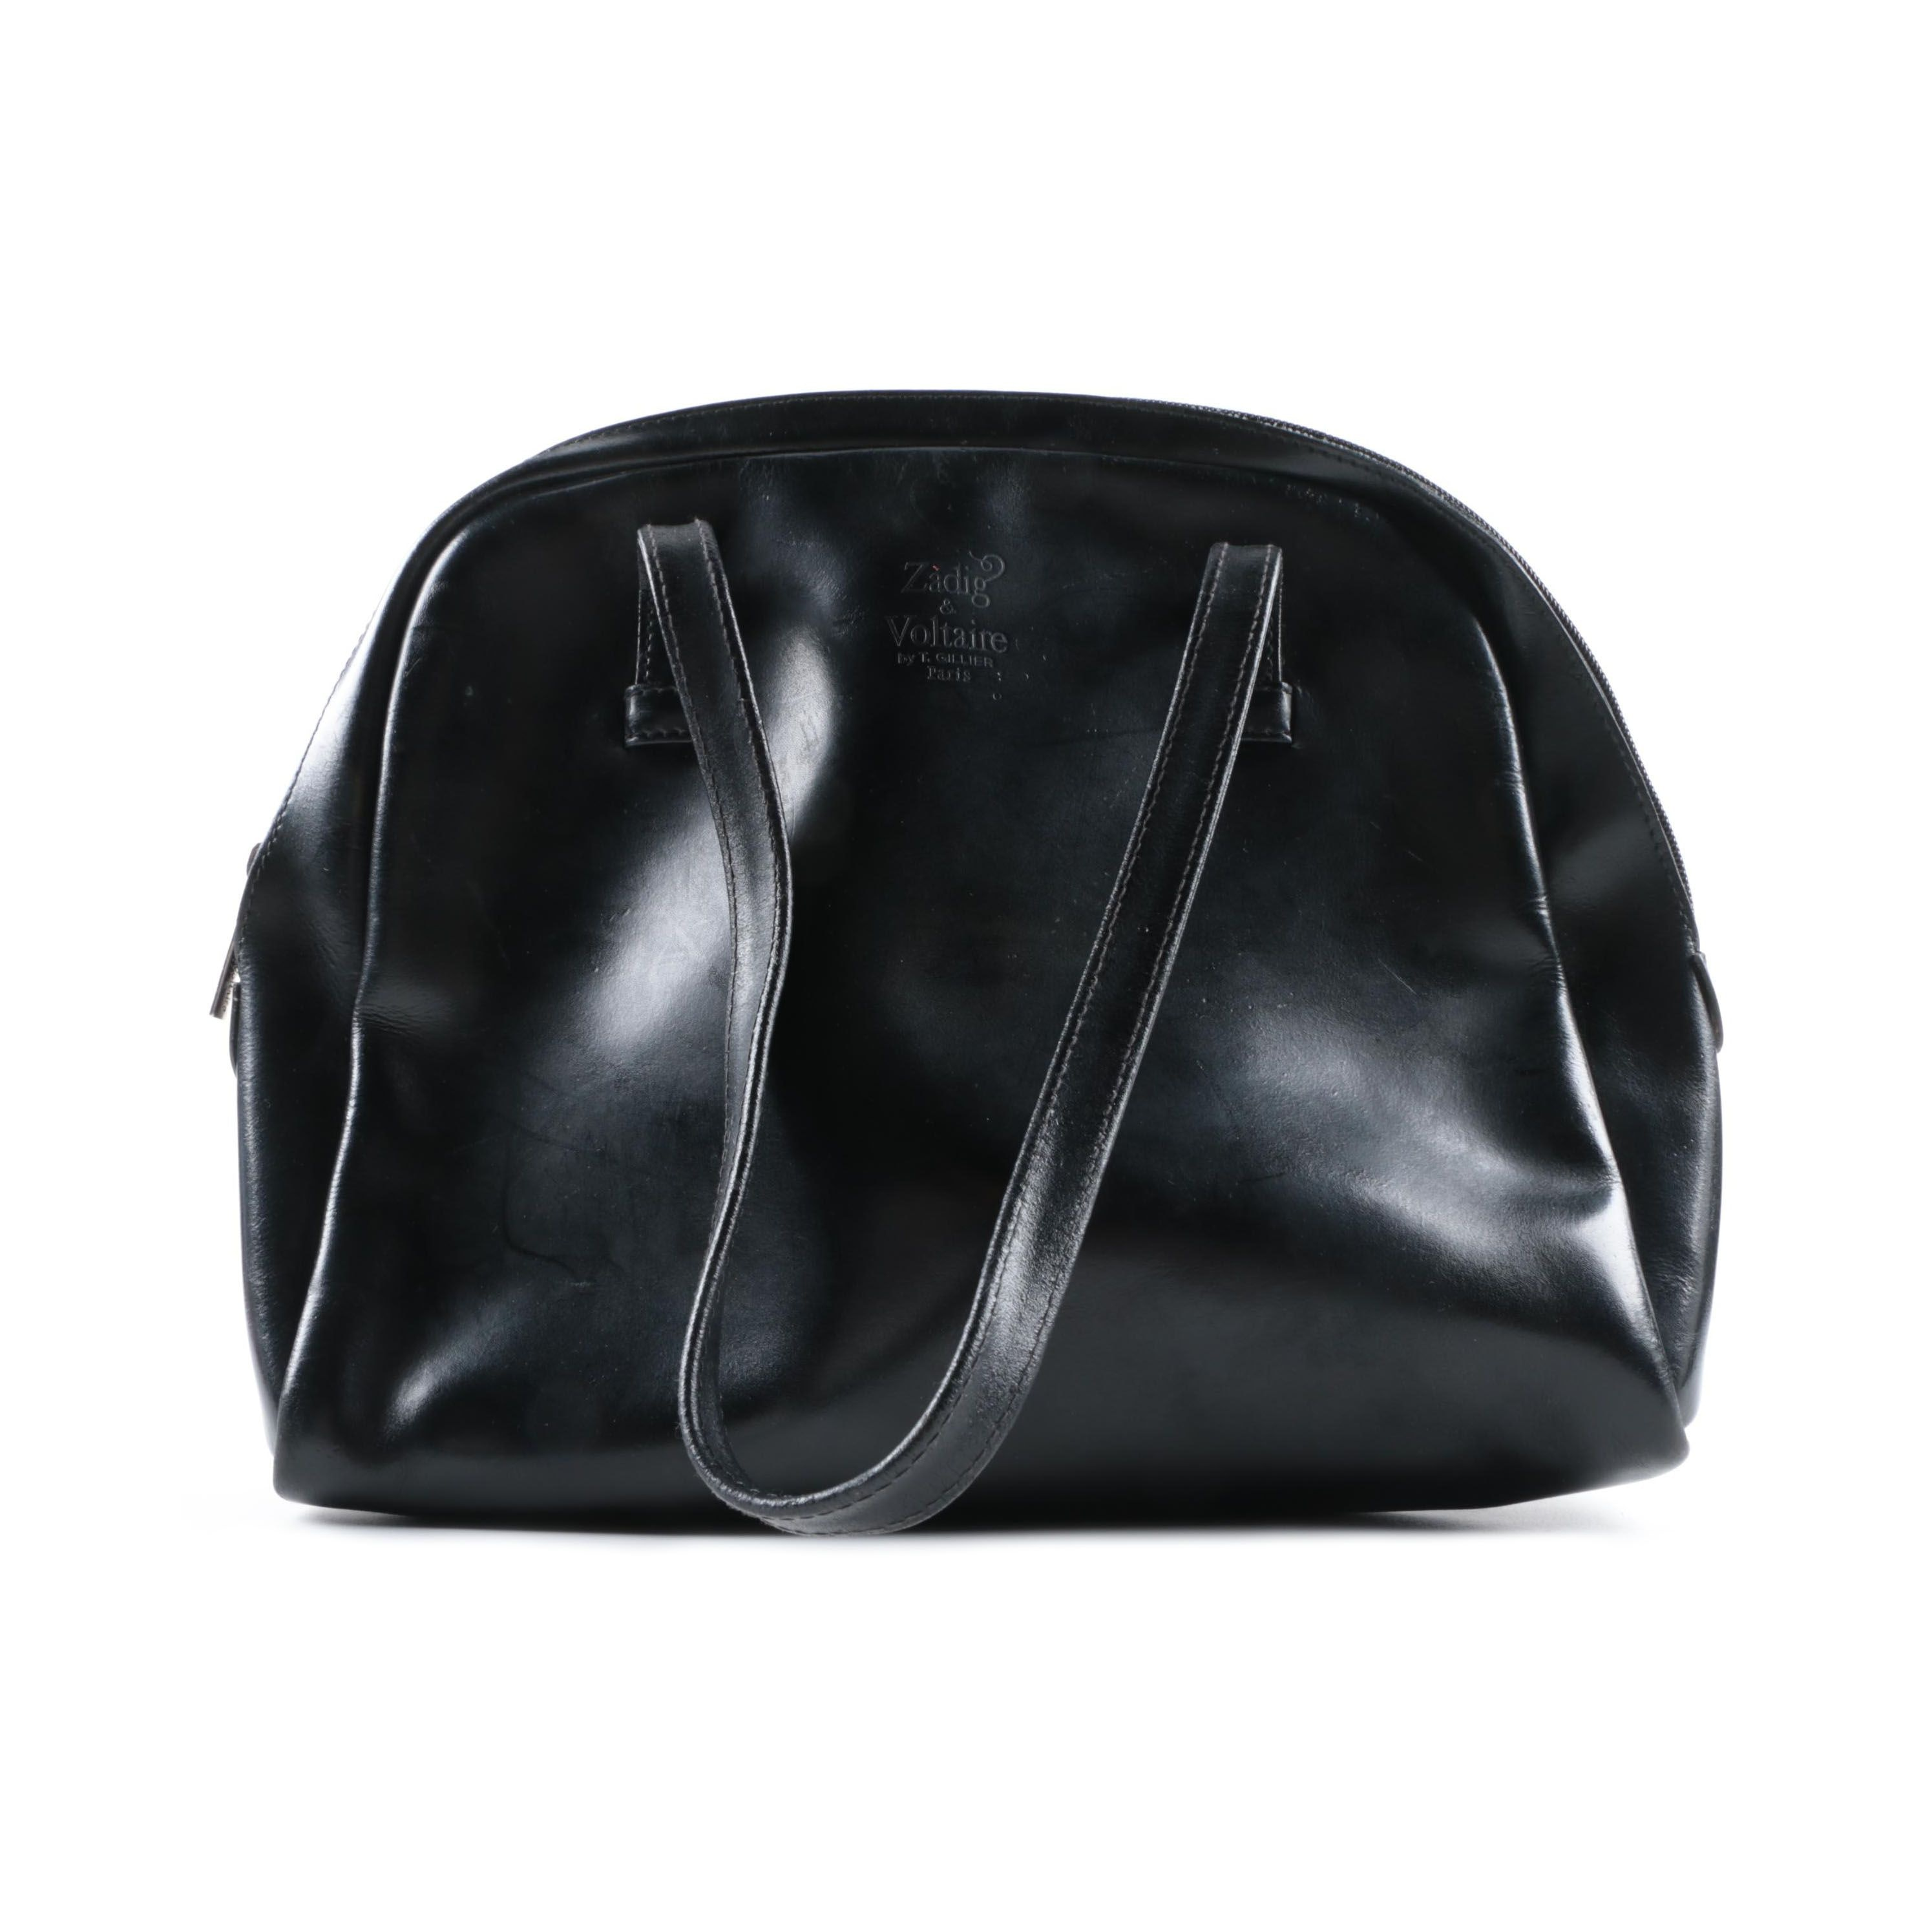 Zadig & Voltaire French Made Black Leather Handbag